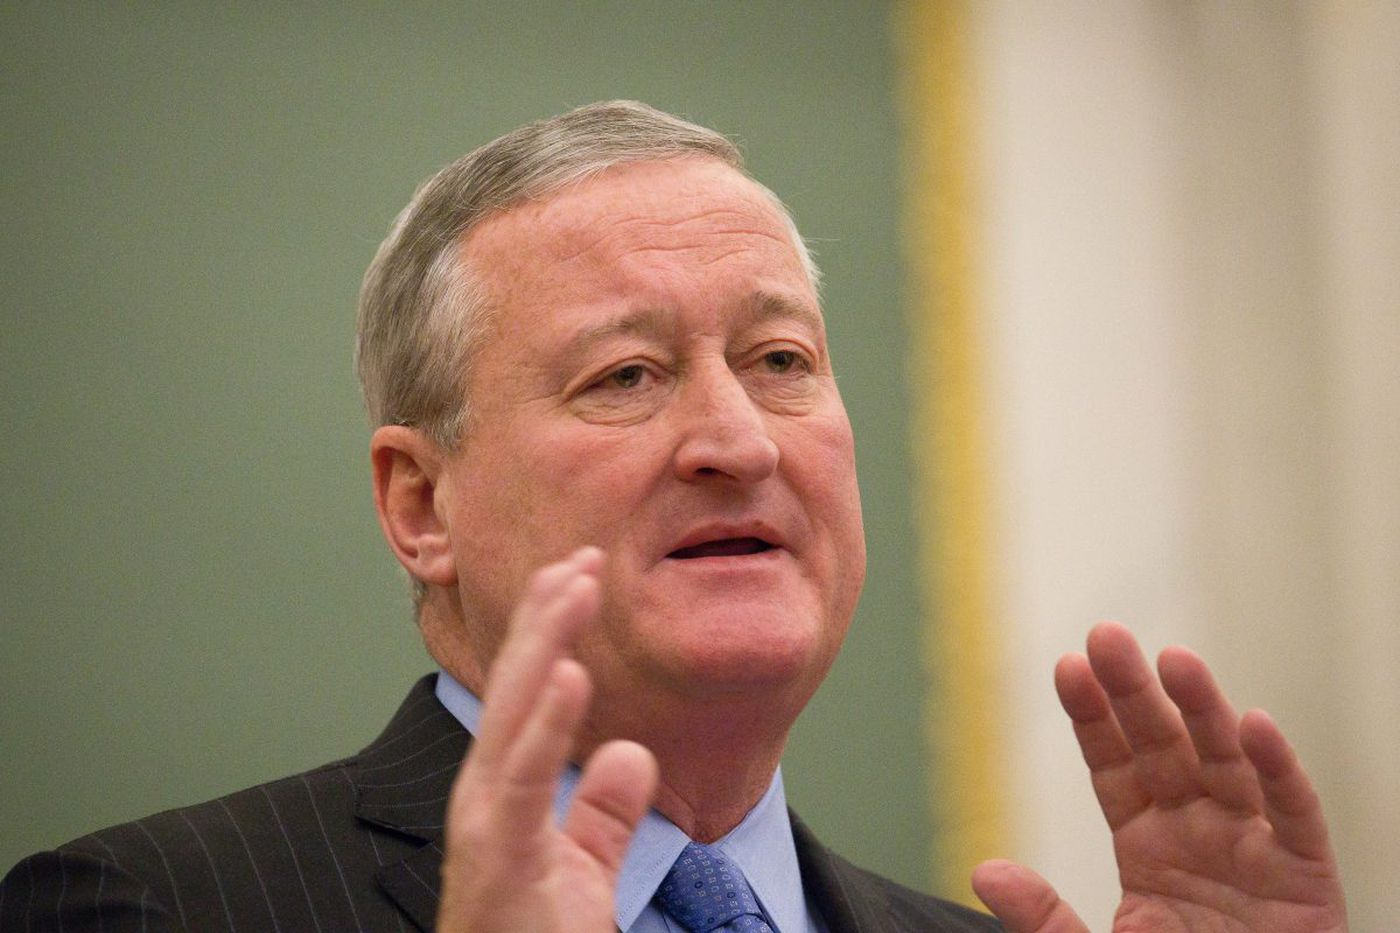 Mayor Kenney says Trump has 'no compassion' for immigrants